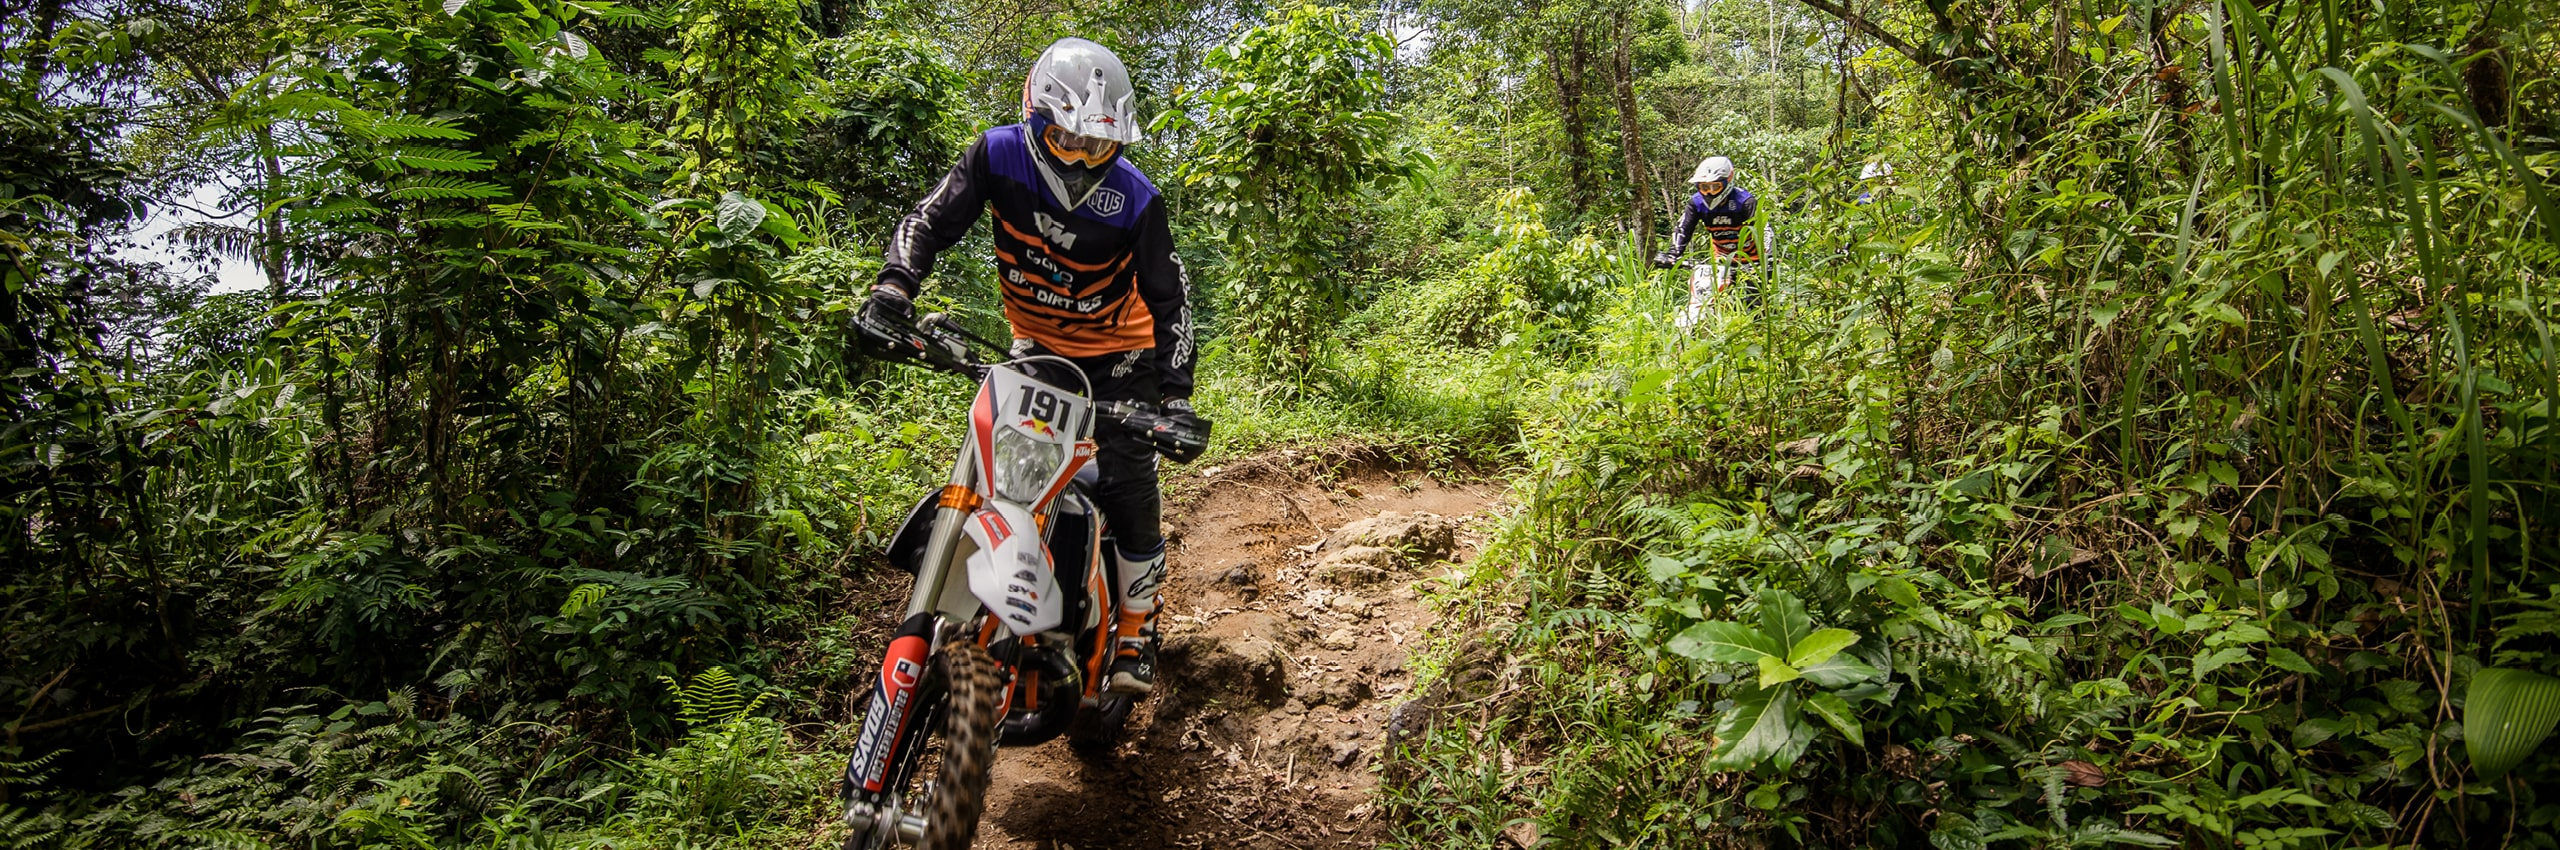 Bali_Dirt_Bikes_Tabanan_Jungle_Slider1